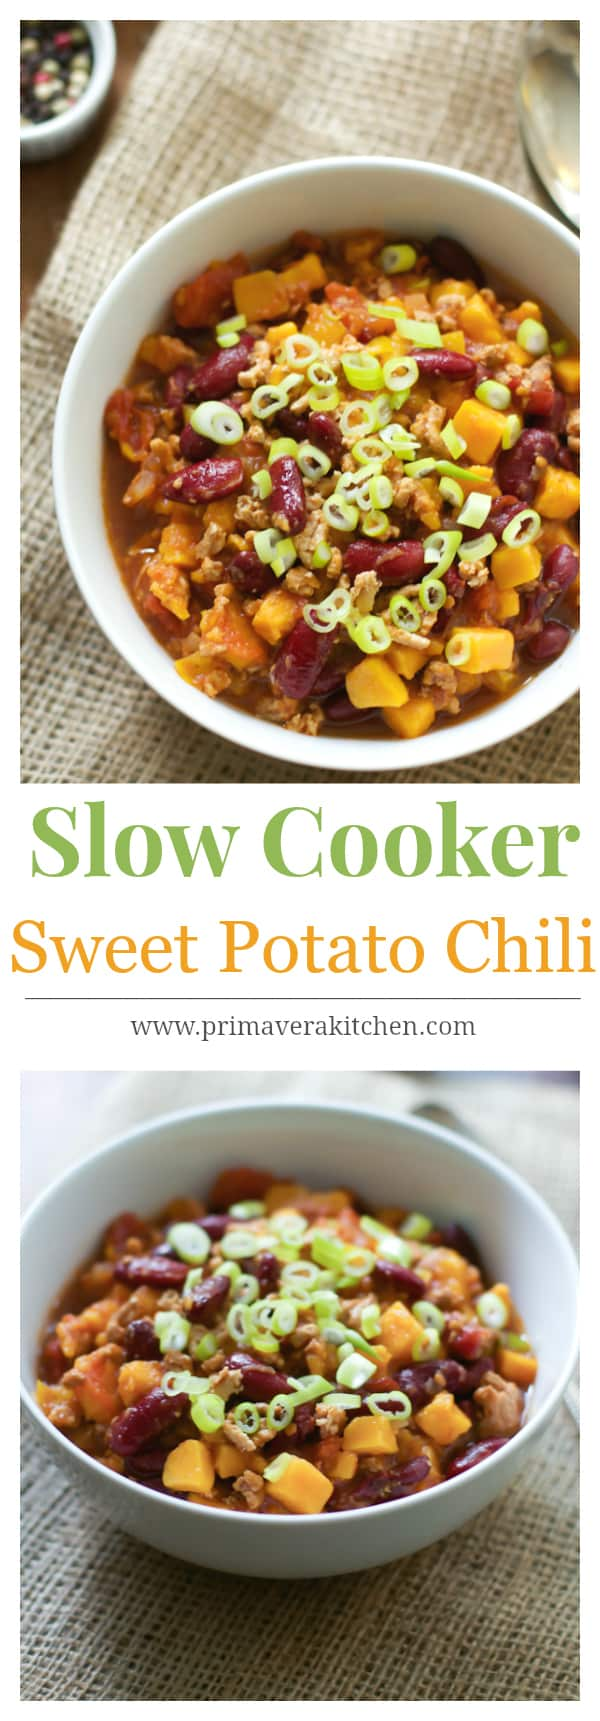 slow cooker sweet potato chili